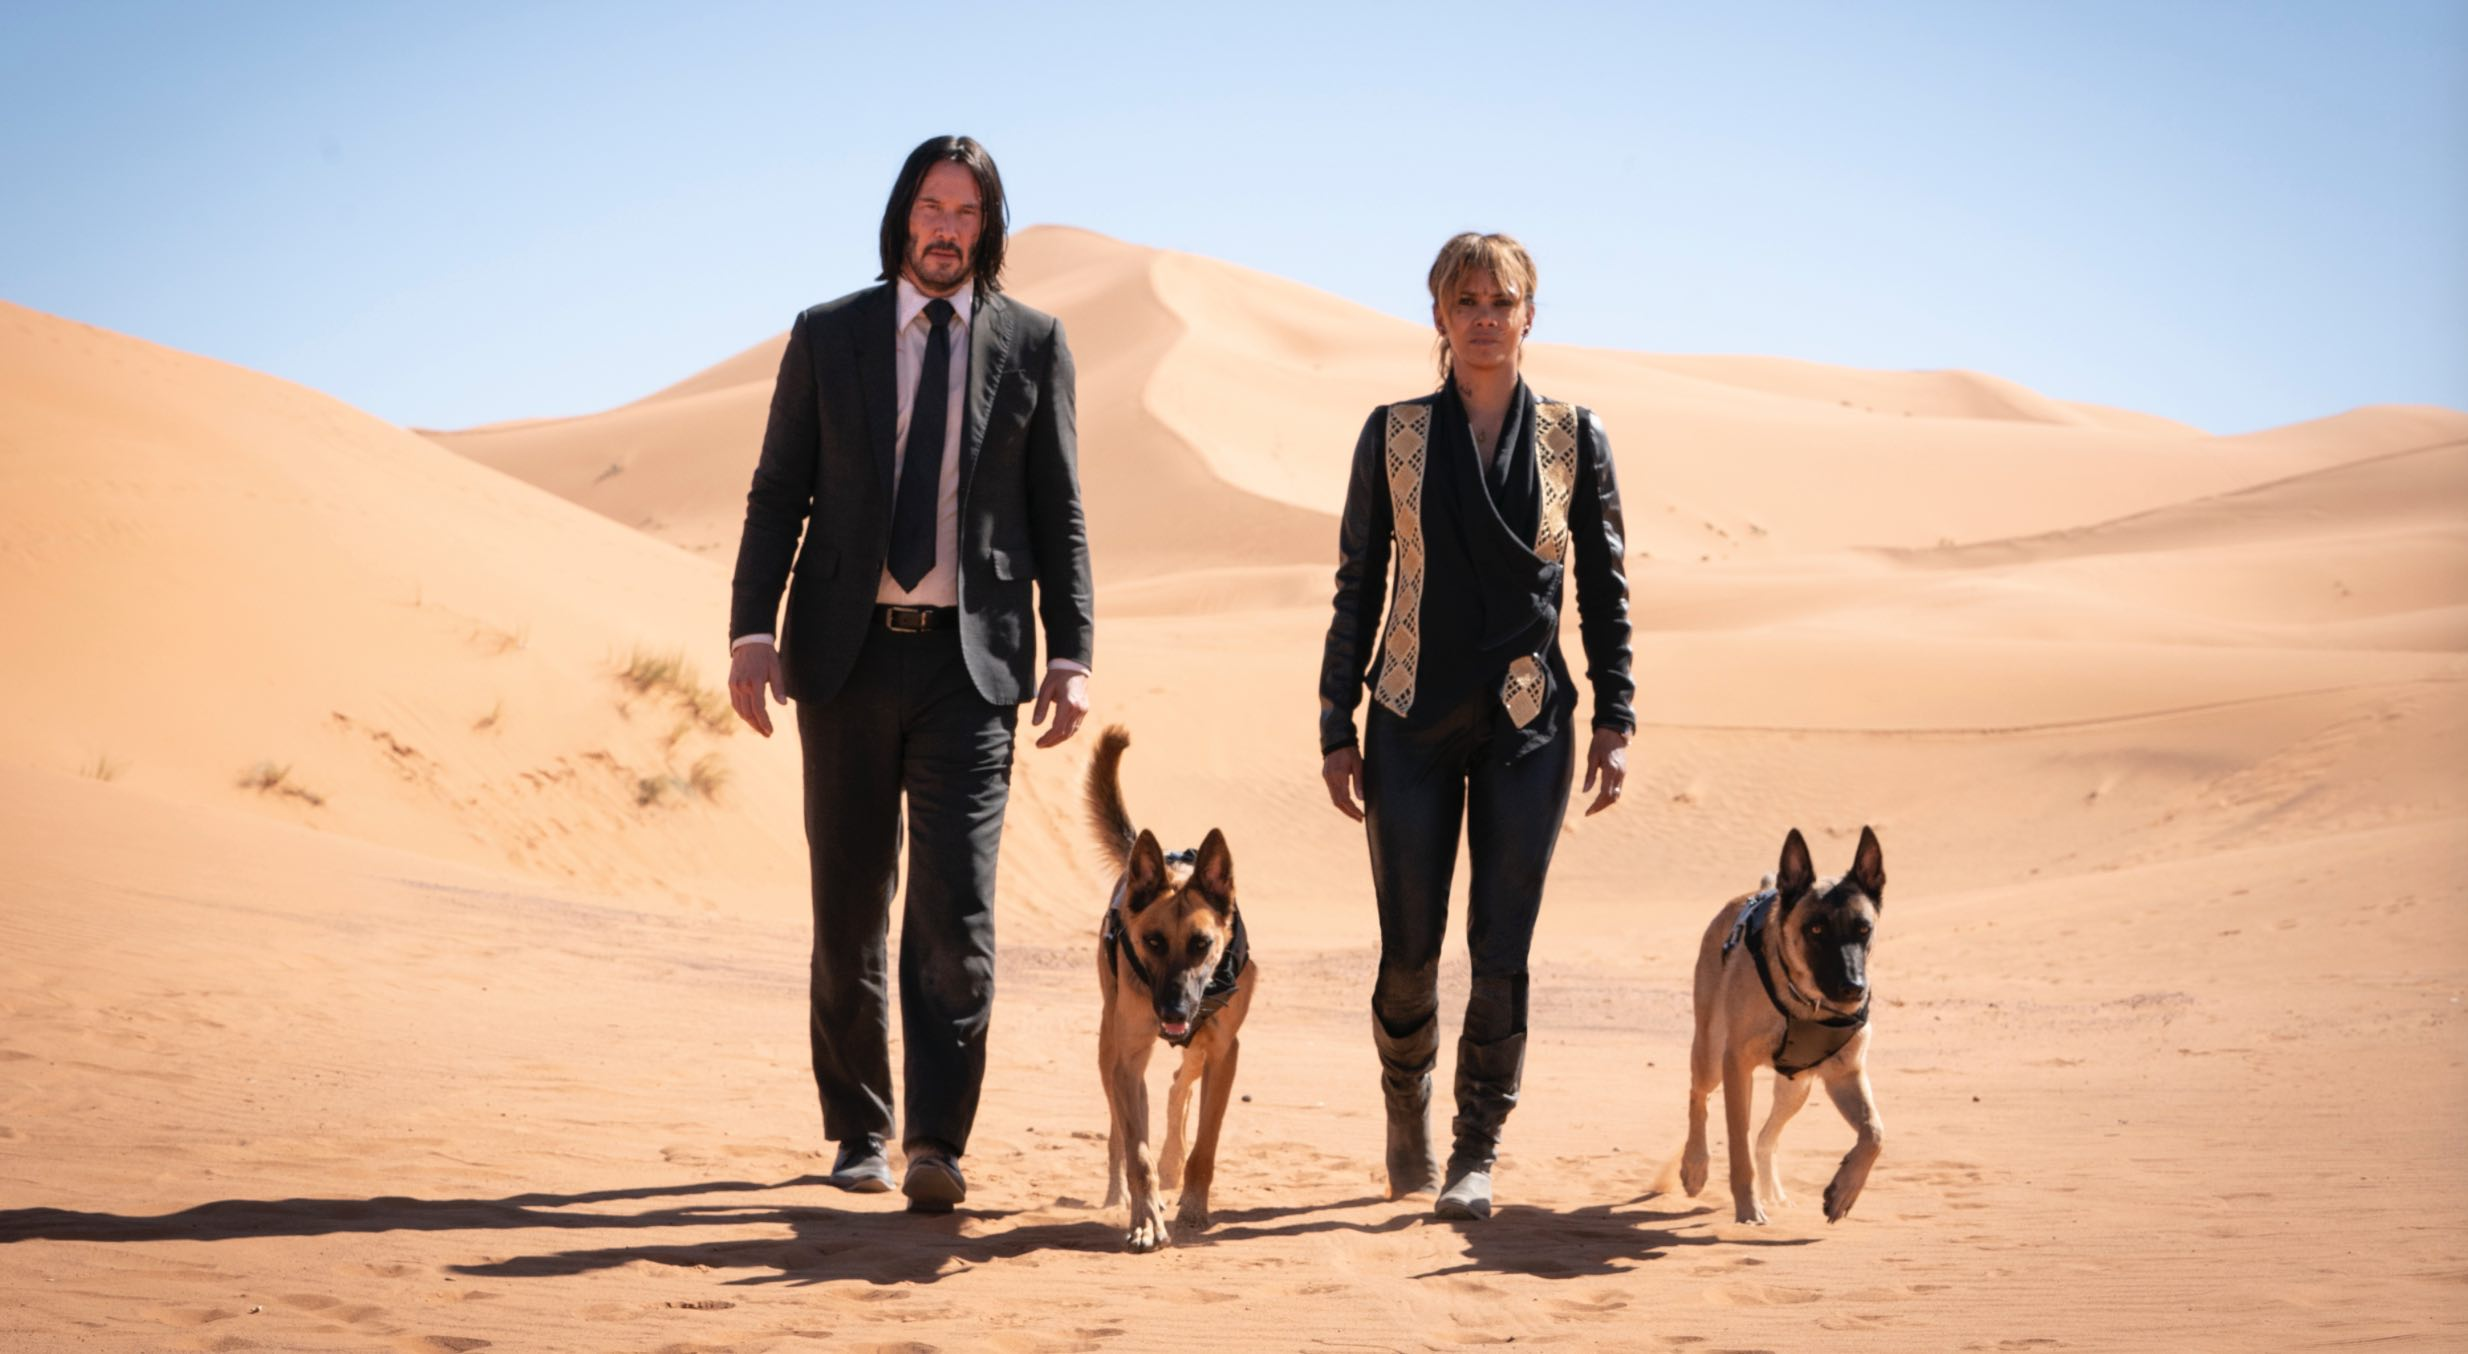 John Wick Keanu Reeves Halle Berry dogs